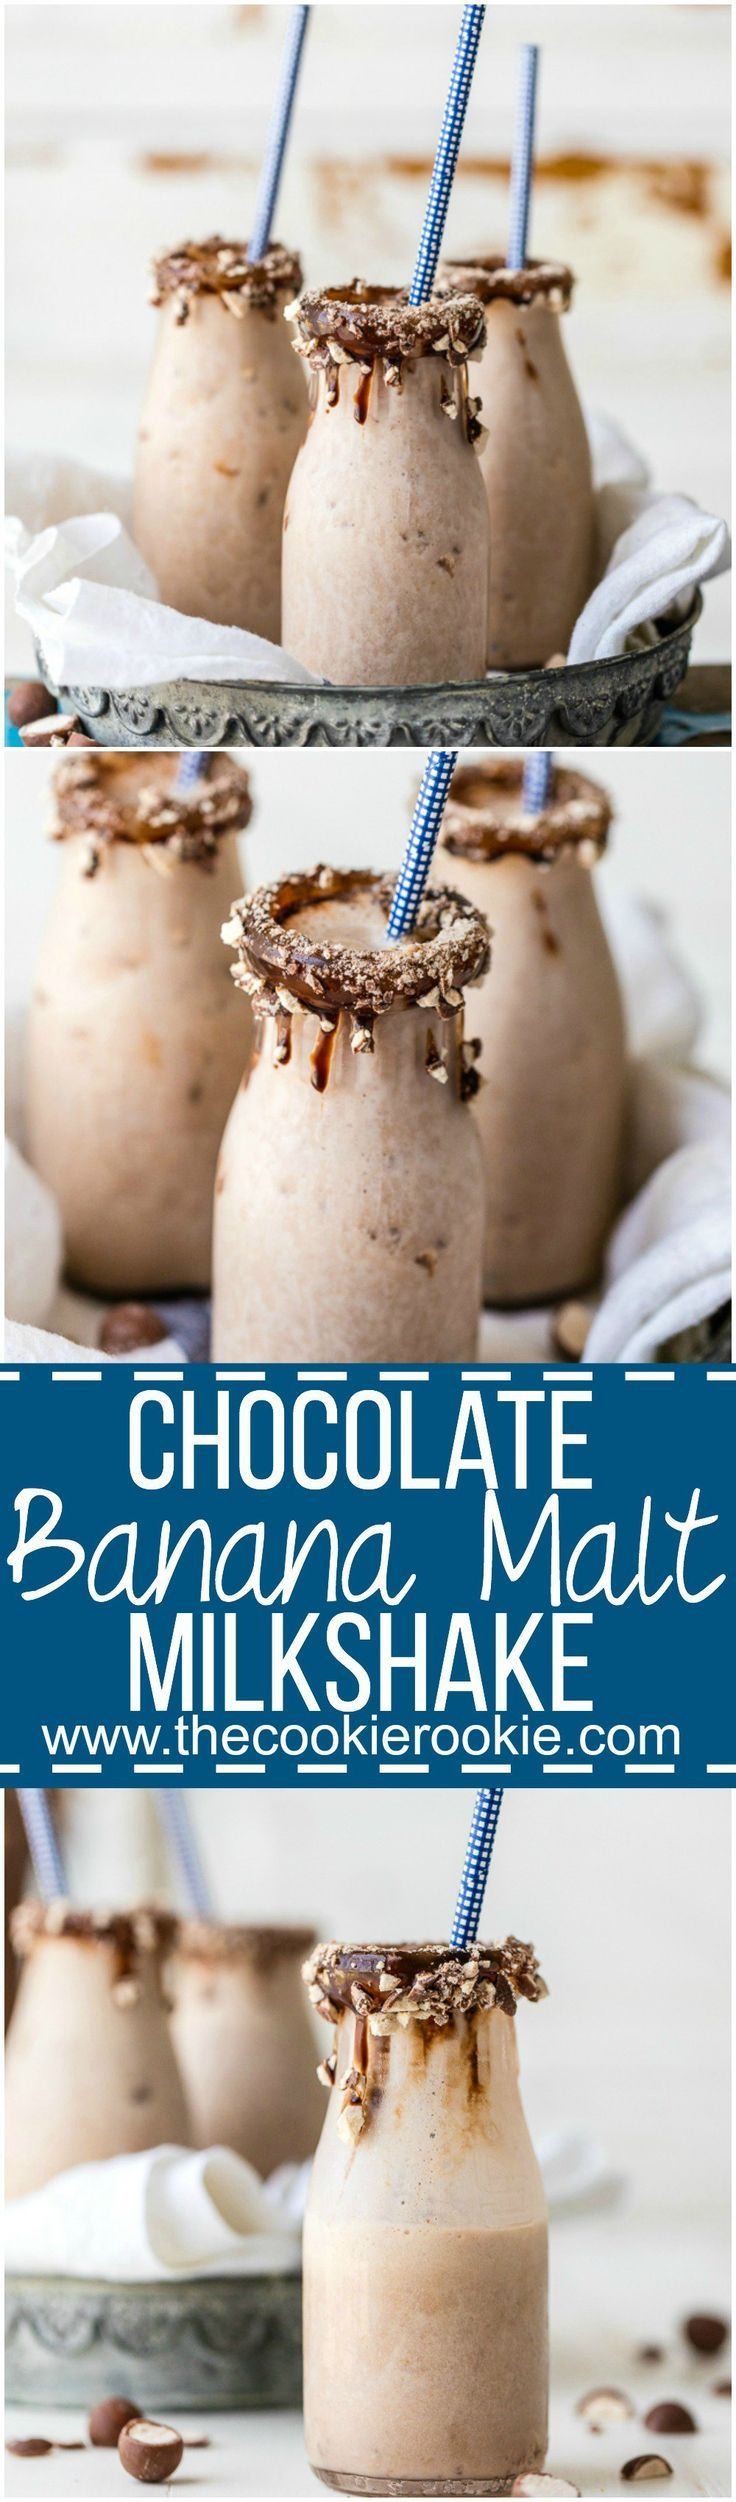 This Chocolate Banana Malt Milkshake is my favorite easy sweet treat! Thrown together in minutes with only 5 ingredients, it doesn't get any better! Voted best milkshake in Missouri!: